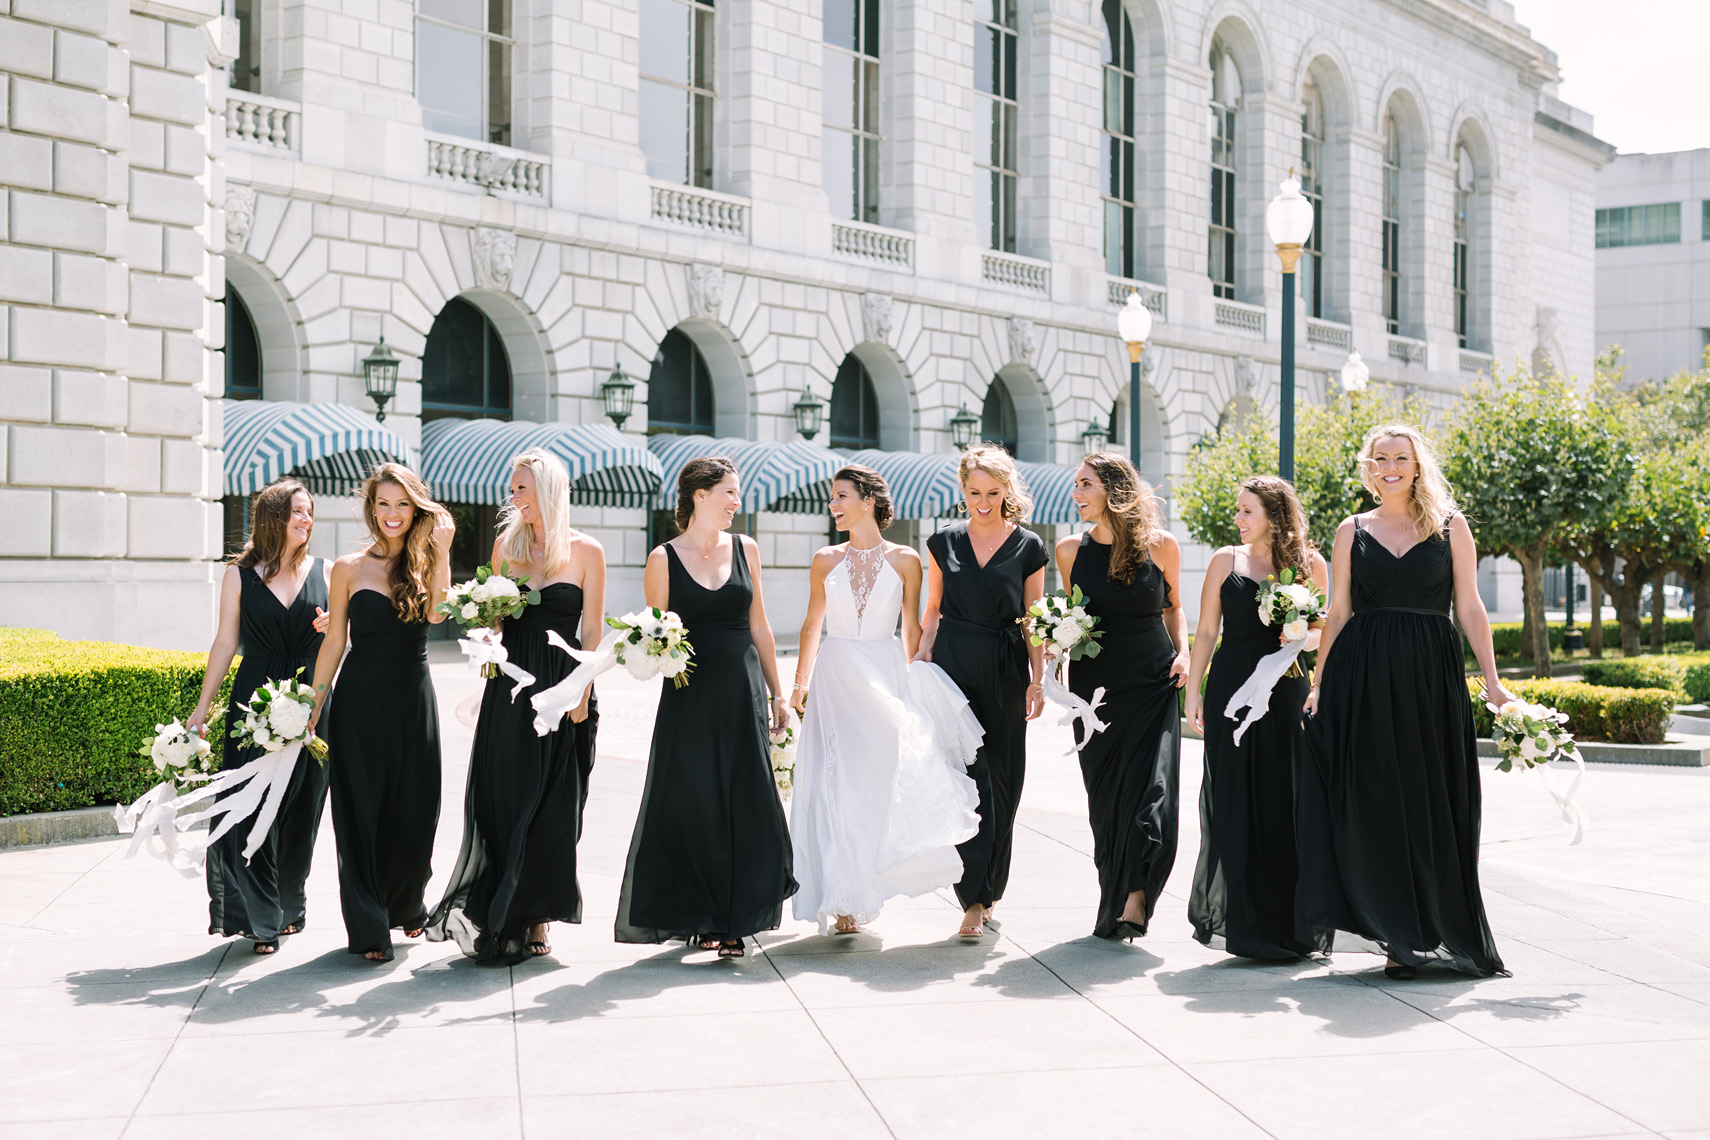 SanFrancisco-Wedding-Bridesmaids2